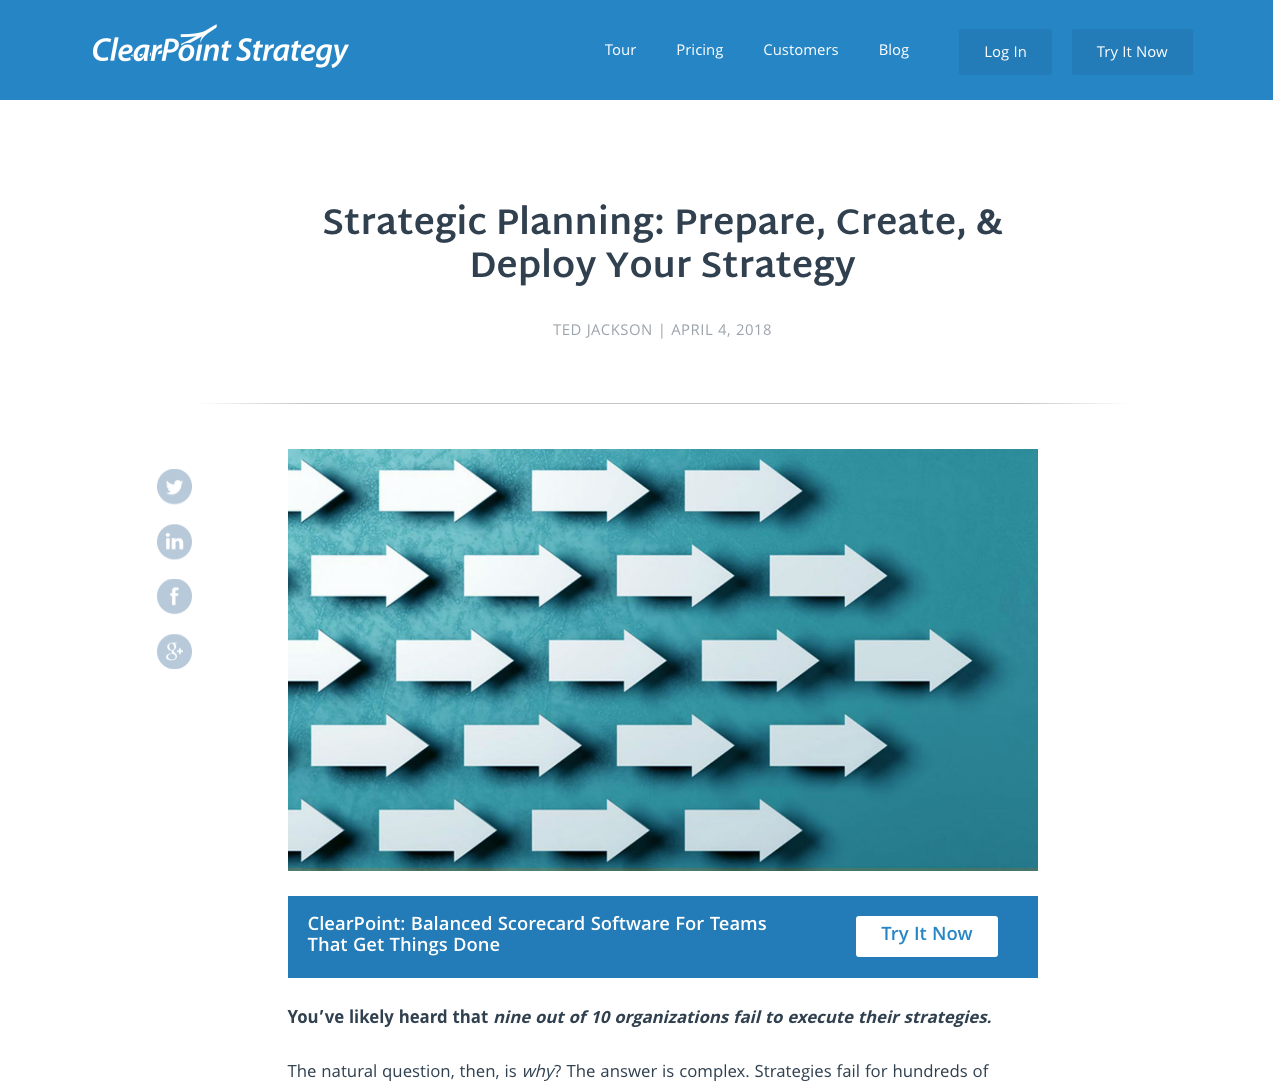 Strategic Planning: Prepare, Create, & Deploy Your Strategy - ClearPoint's pillar page